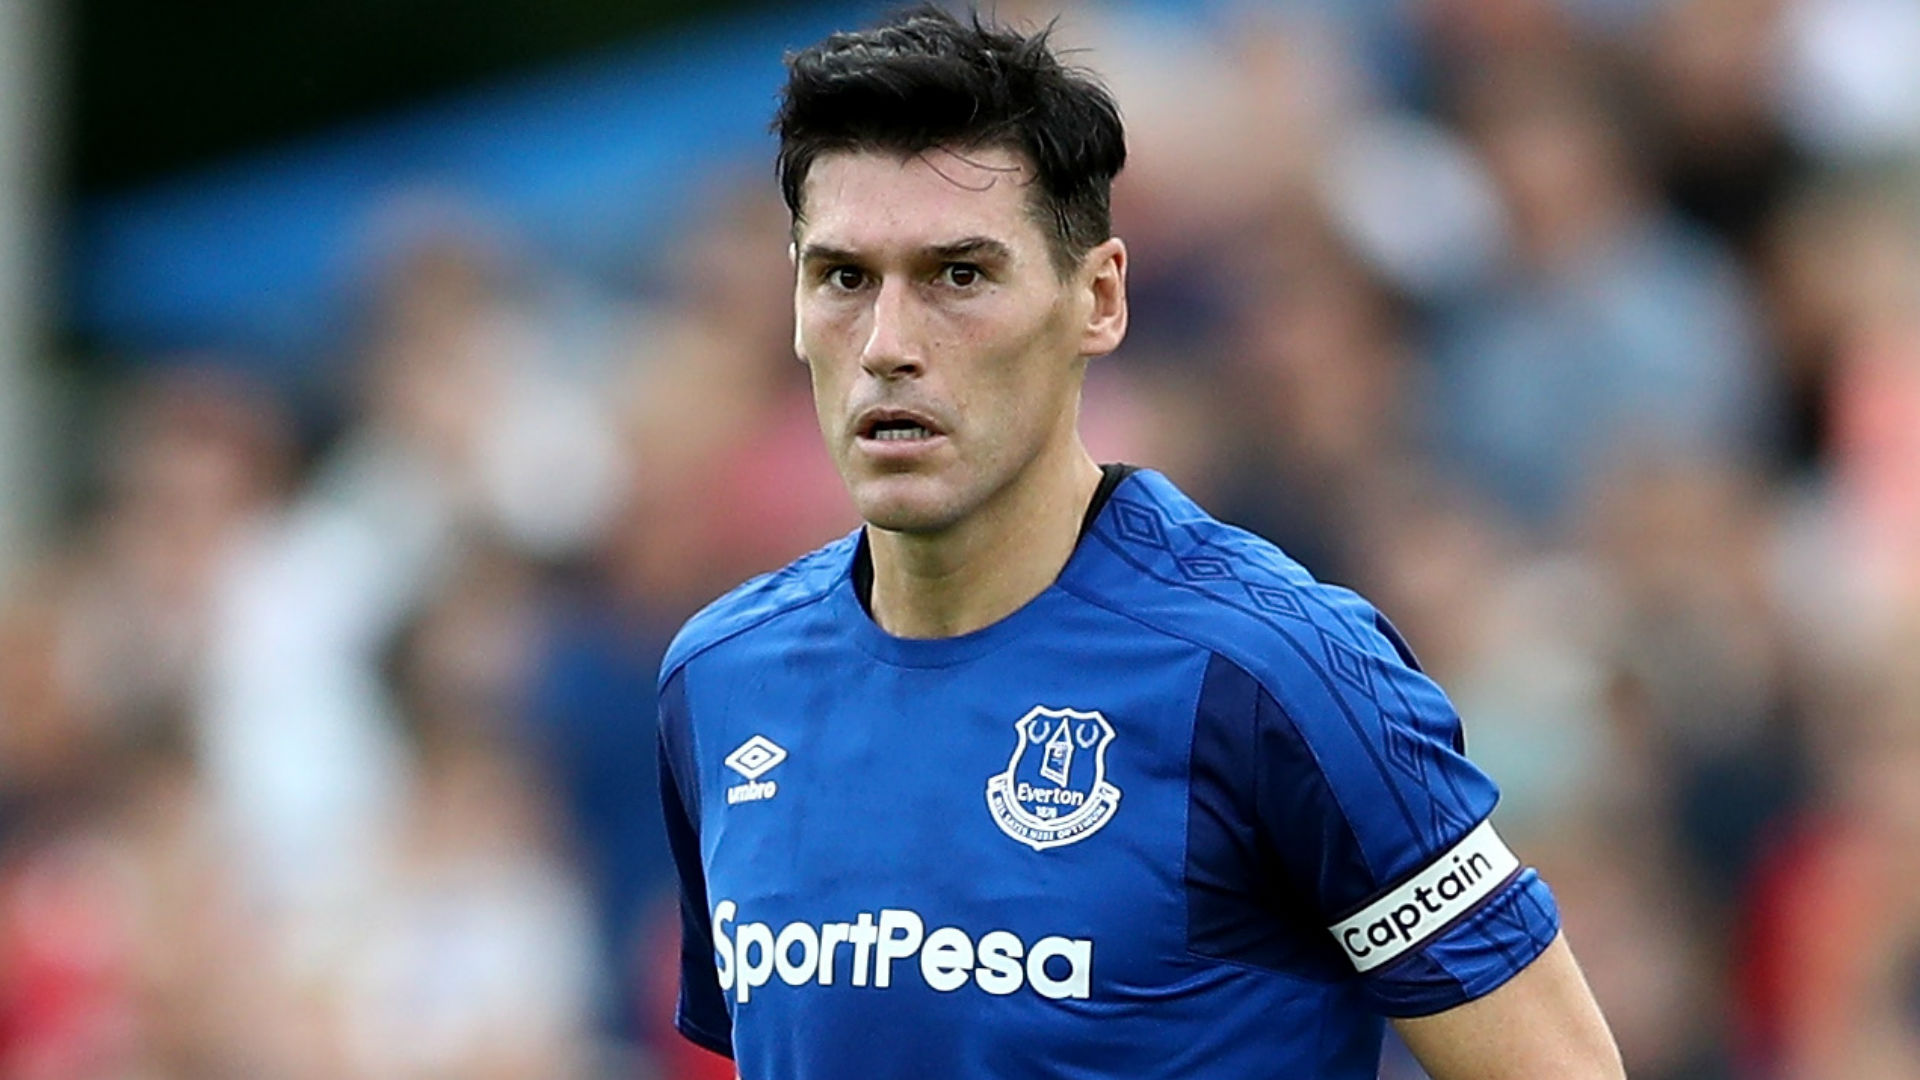 Everton midfielder Gareth Barry 'to join West Bromwich Albion'